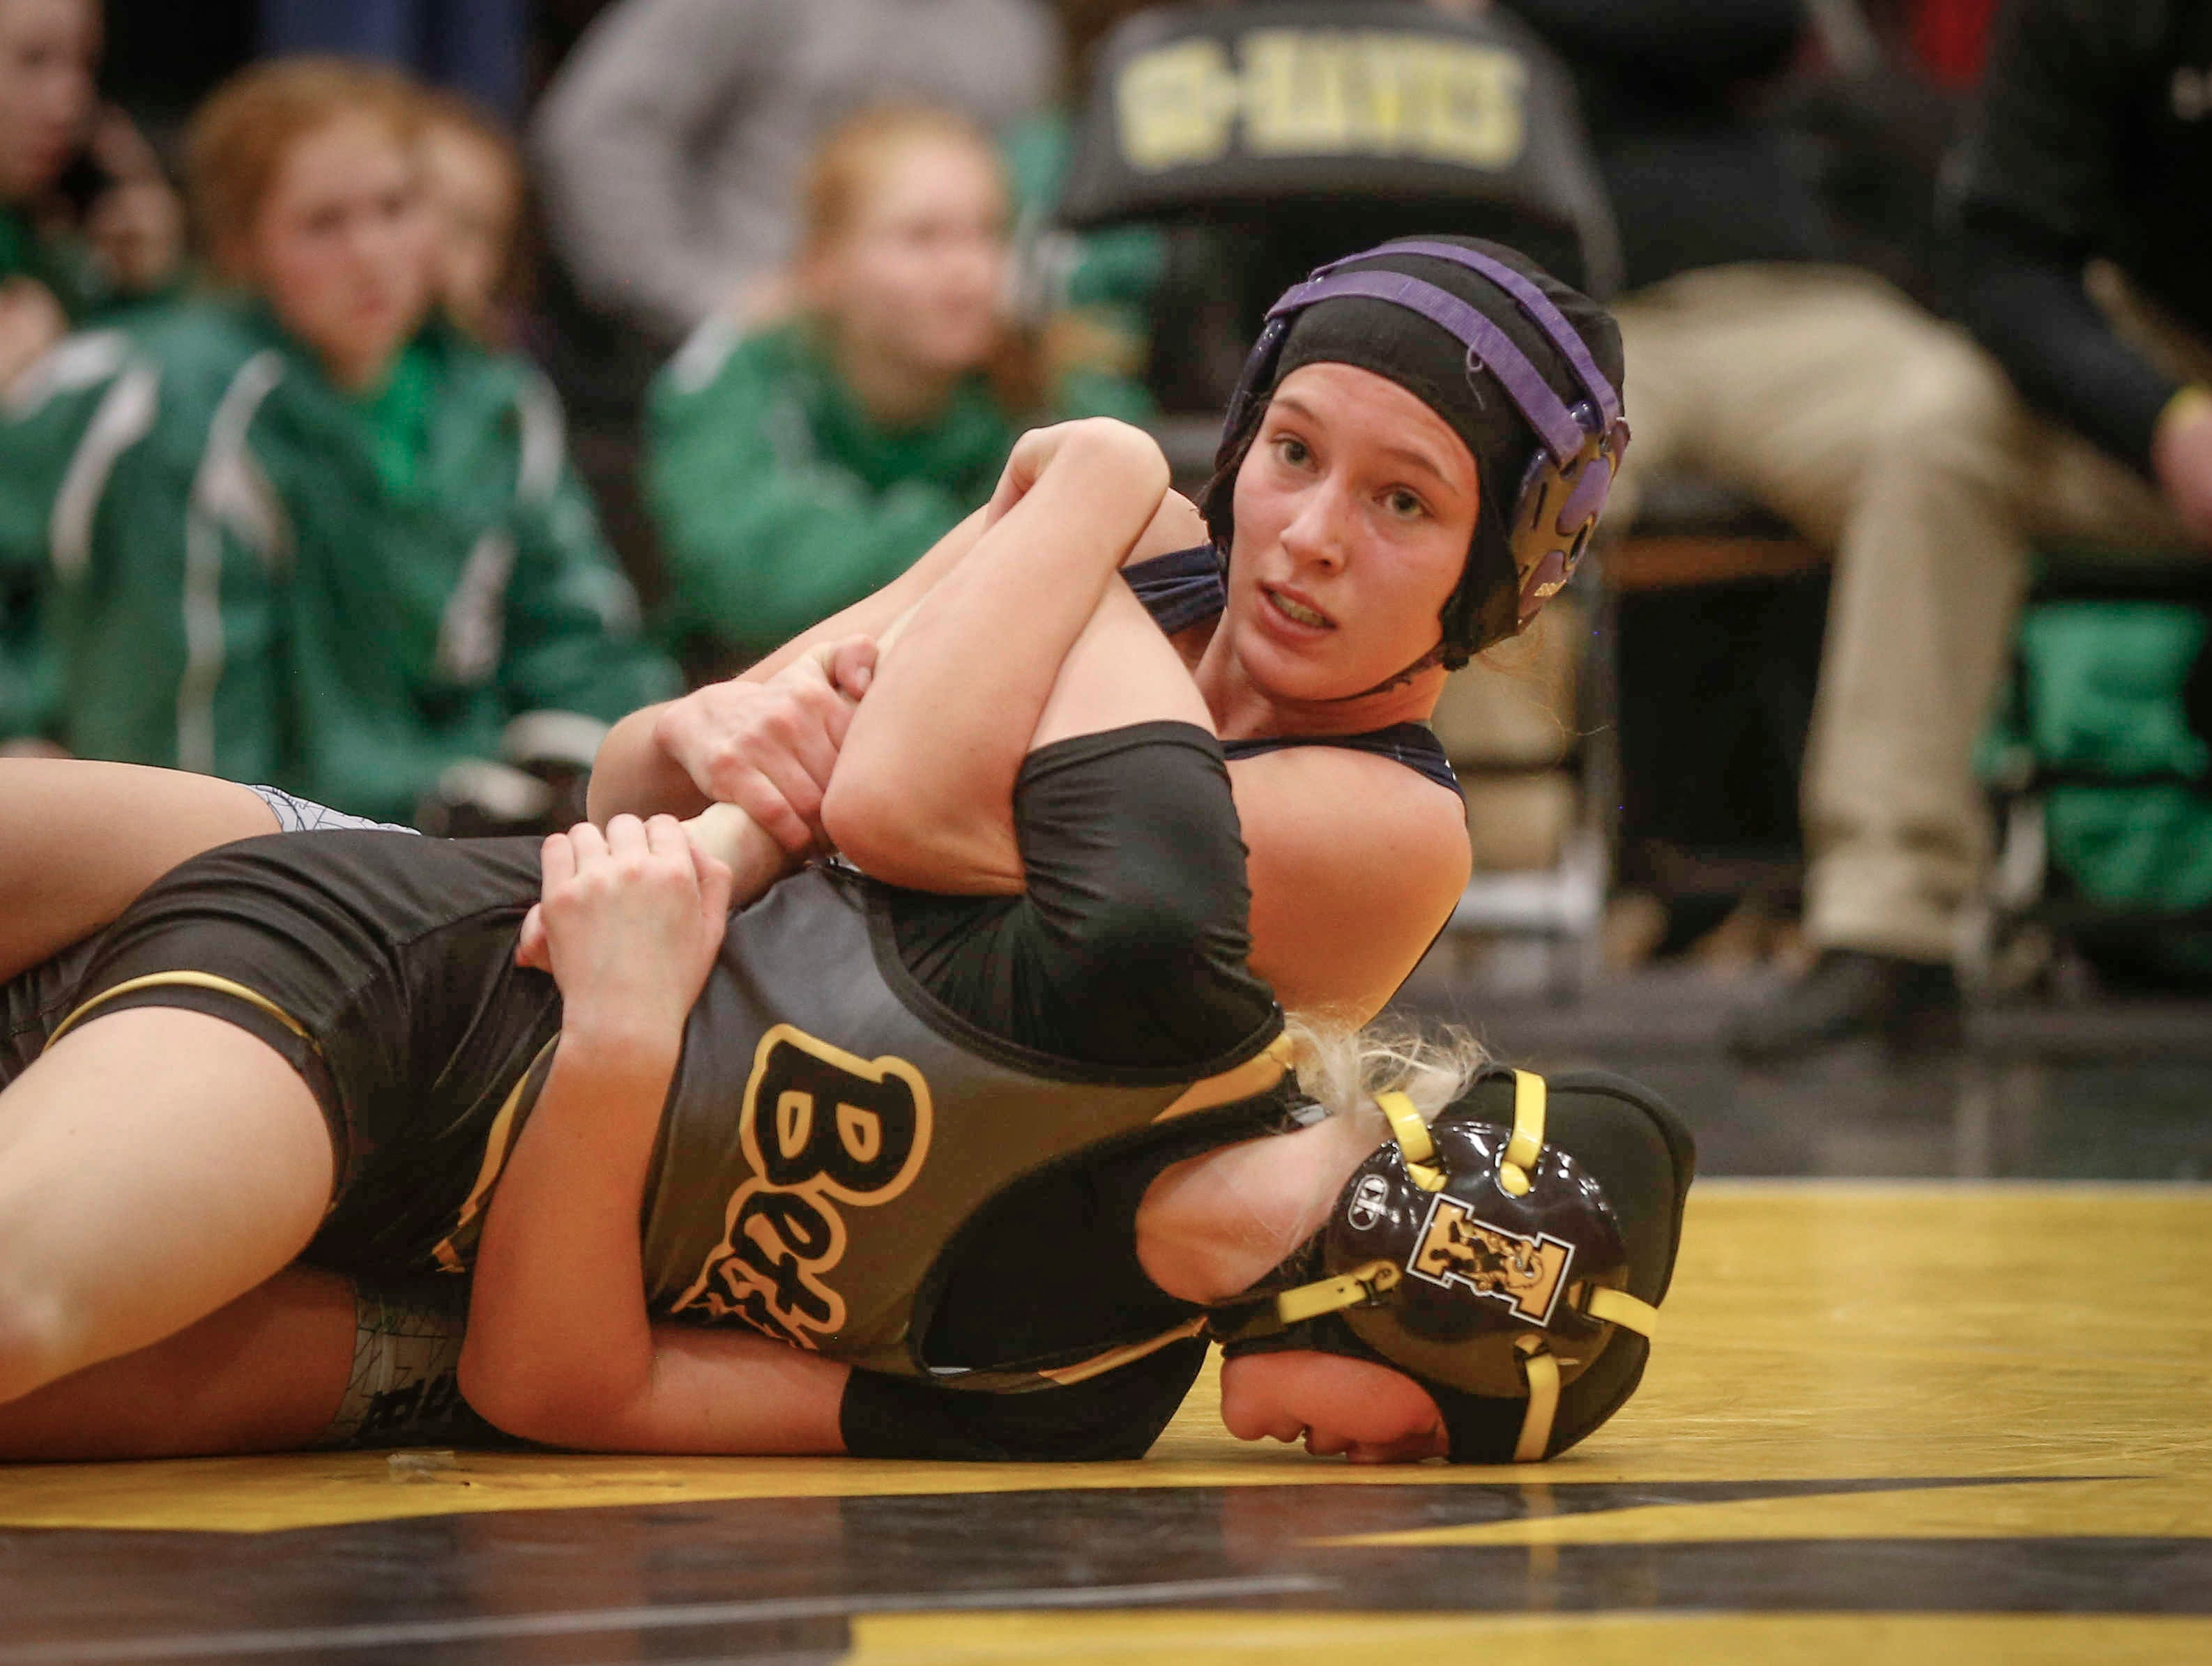 AGWSR junior Ali Gerbracht looks up at the clock while controlling Bettendorf's Ella Schmit in their match at 106 pounds on Saturday, Jan. 19, 2019, during the first Iowa girls state wrestling tournament at Waverly-Shell Rock High School in Waverly. Gerbracht won and went down in state history as the first Iowa high school girl state wrestling champion.